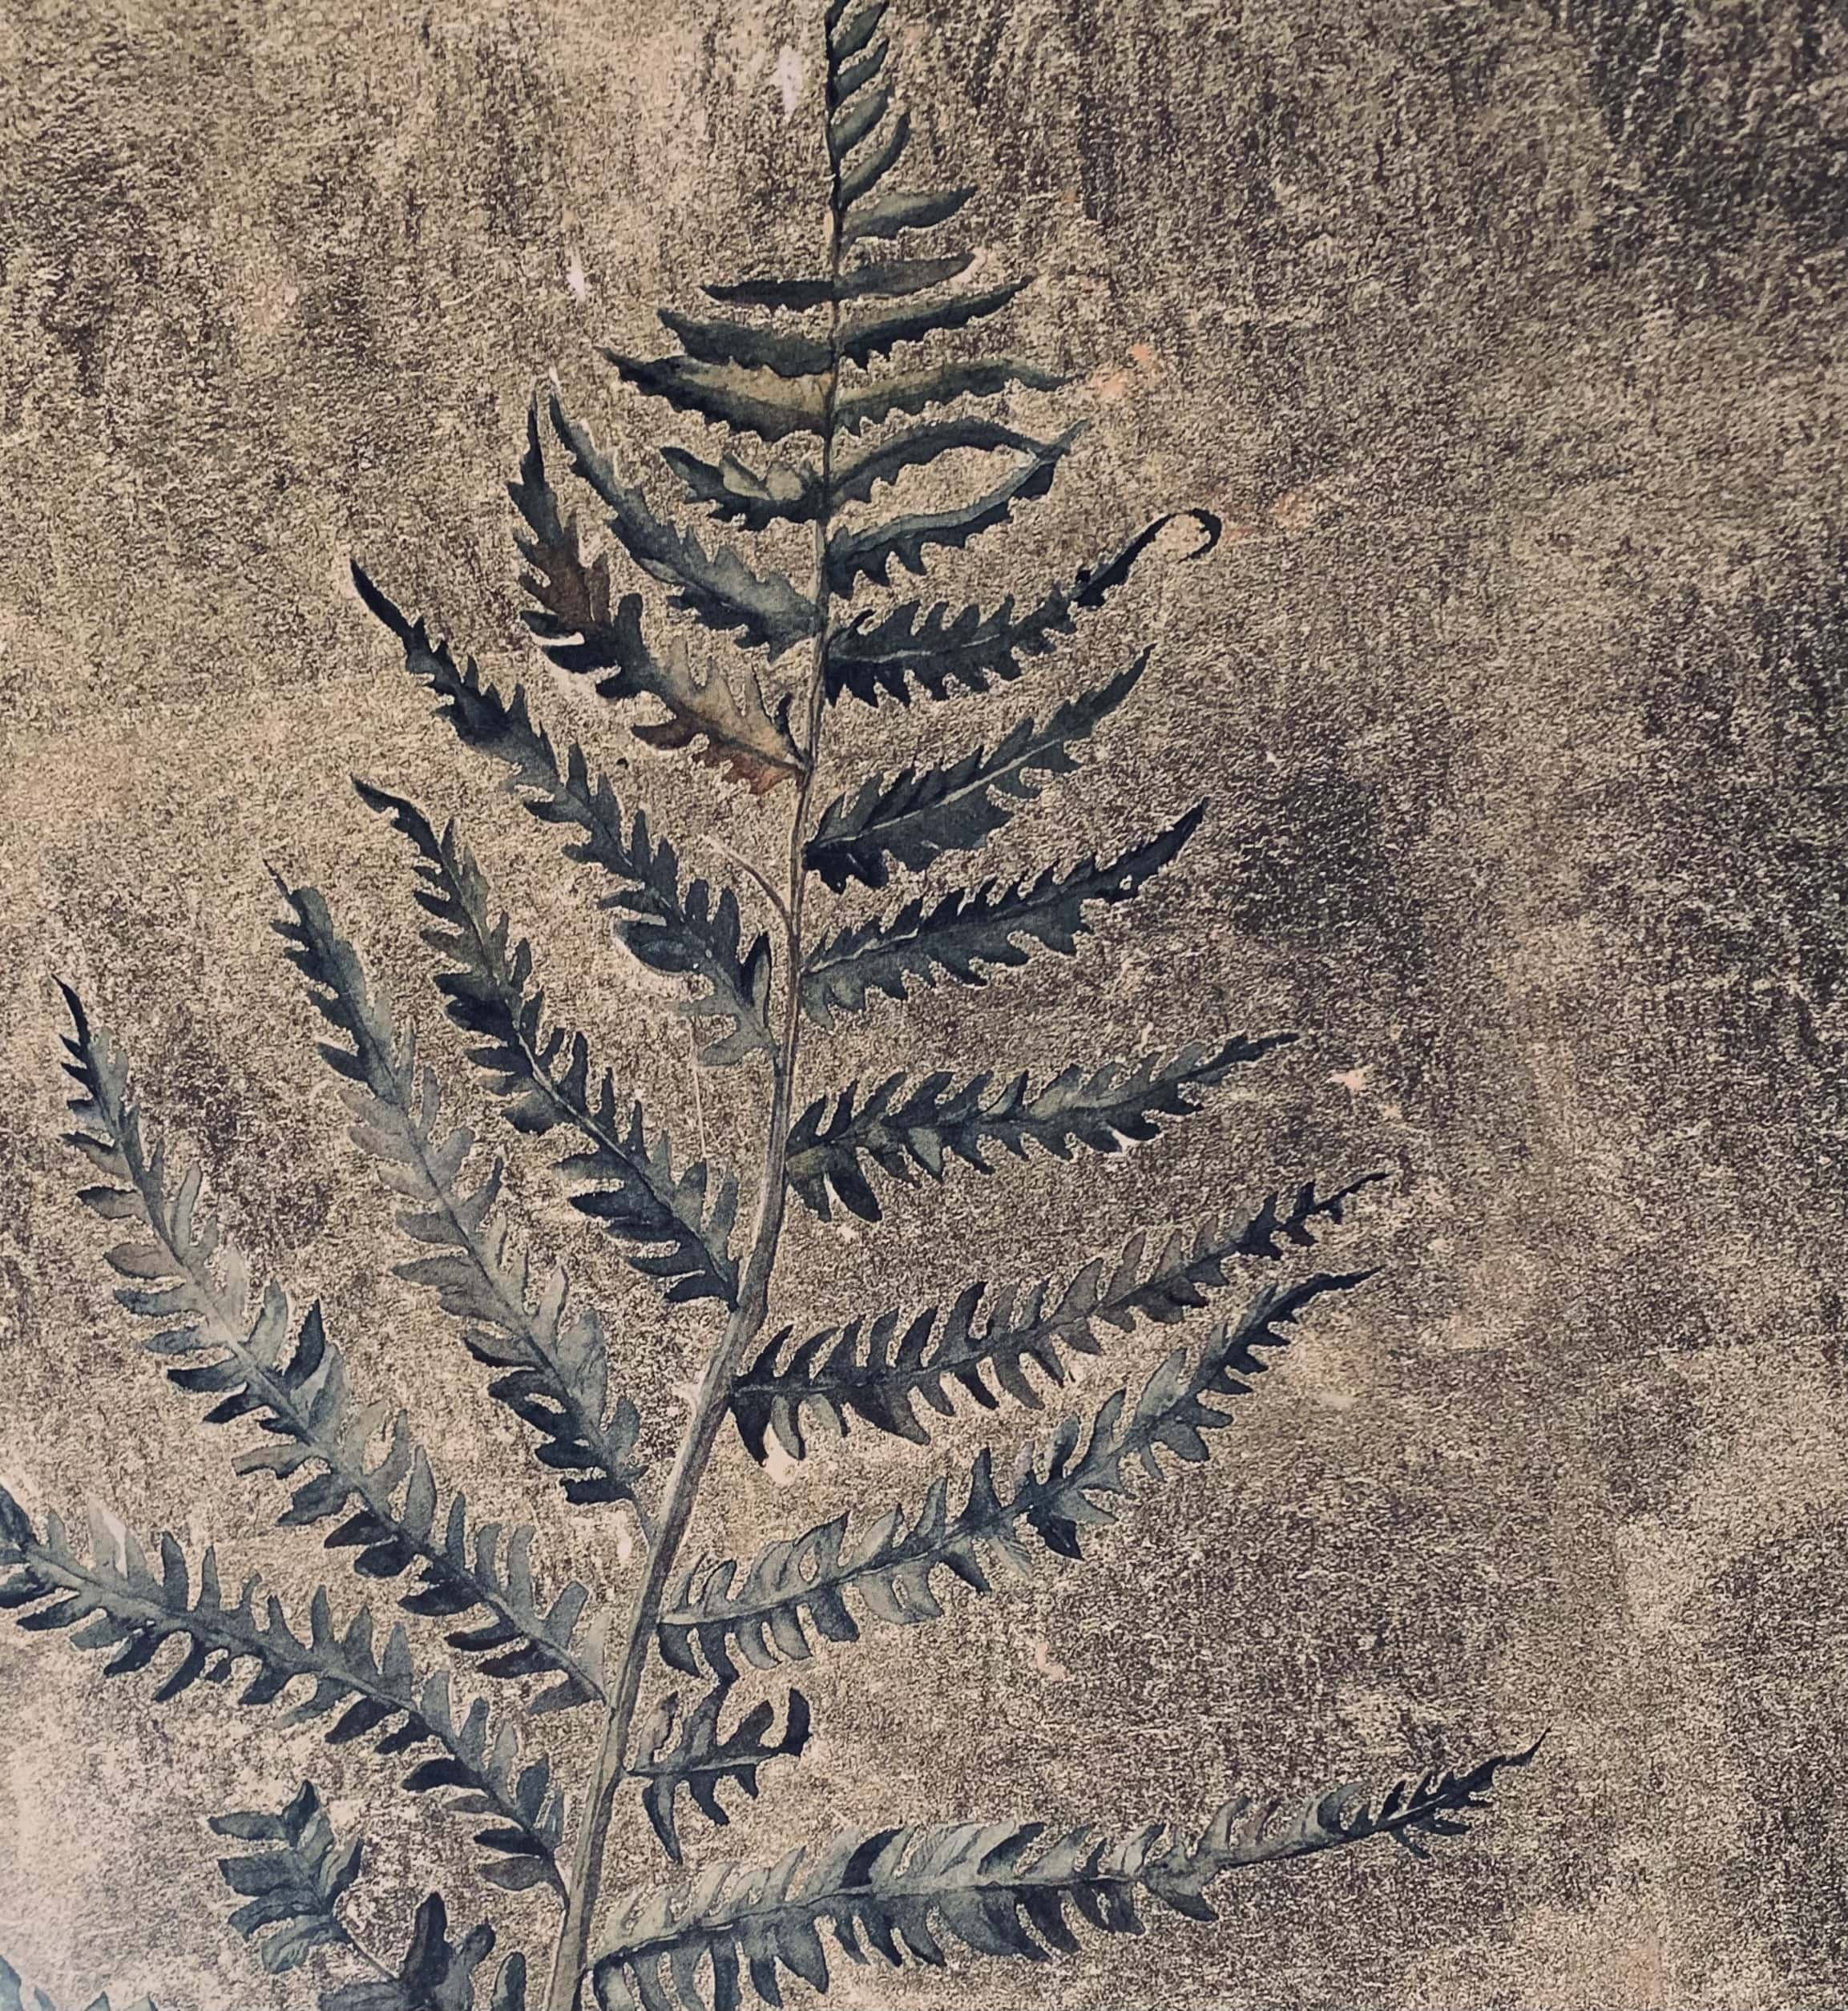 """Fern. Illustration by Jackie Morris in """"The Lost Words"""" in the Examined Life Library."""